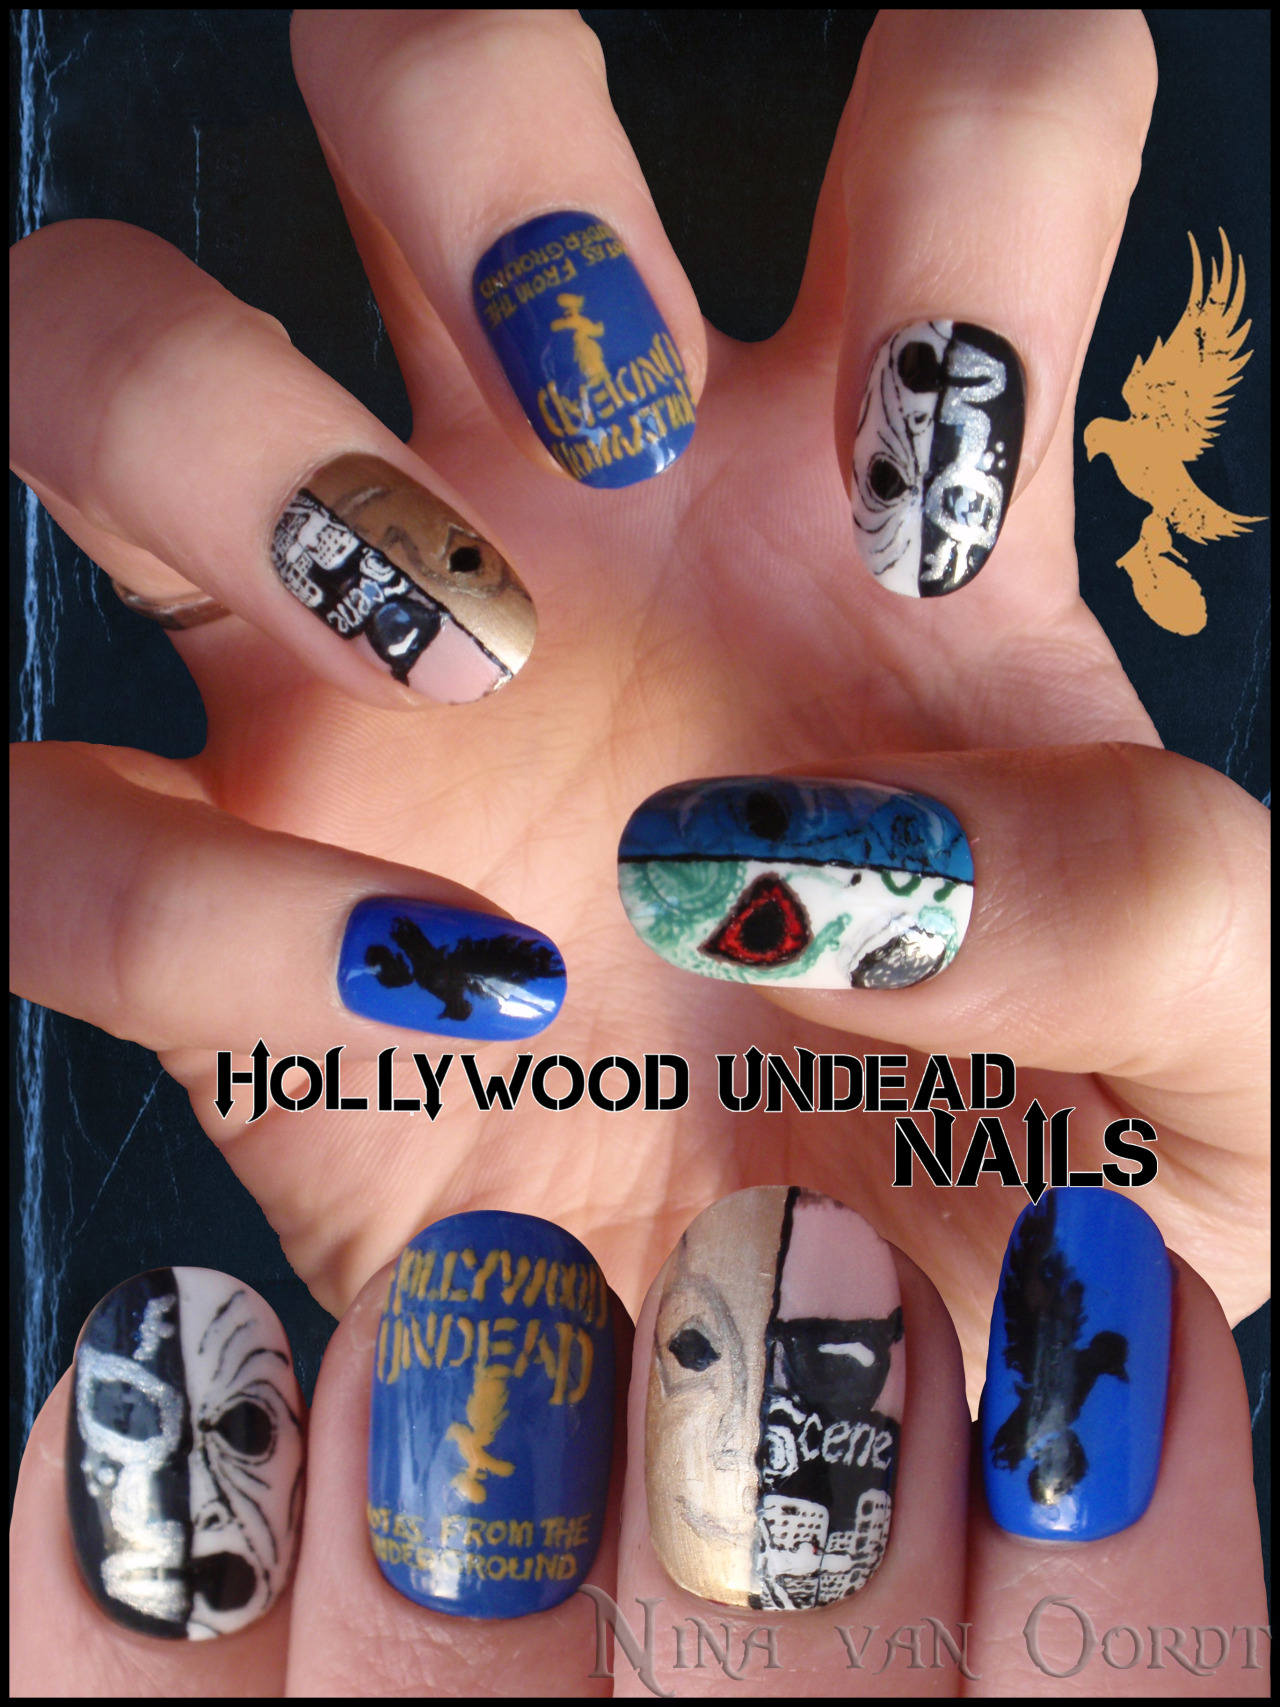 Hollywood Undead nails